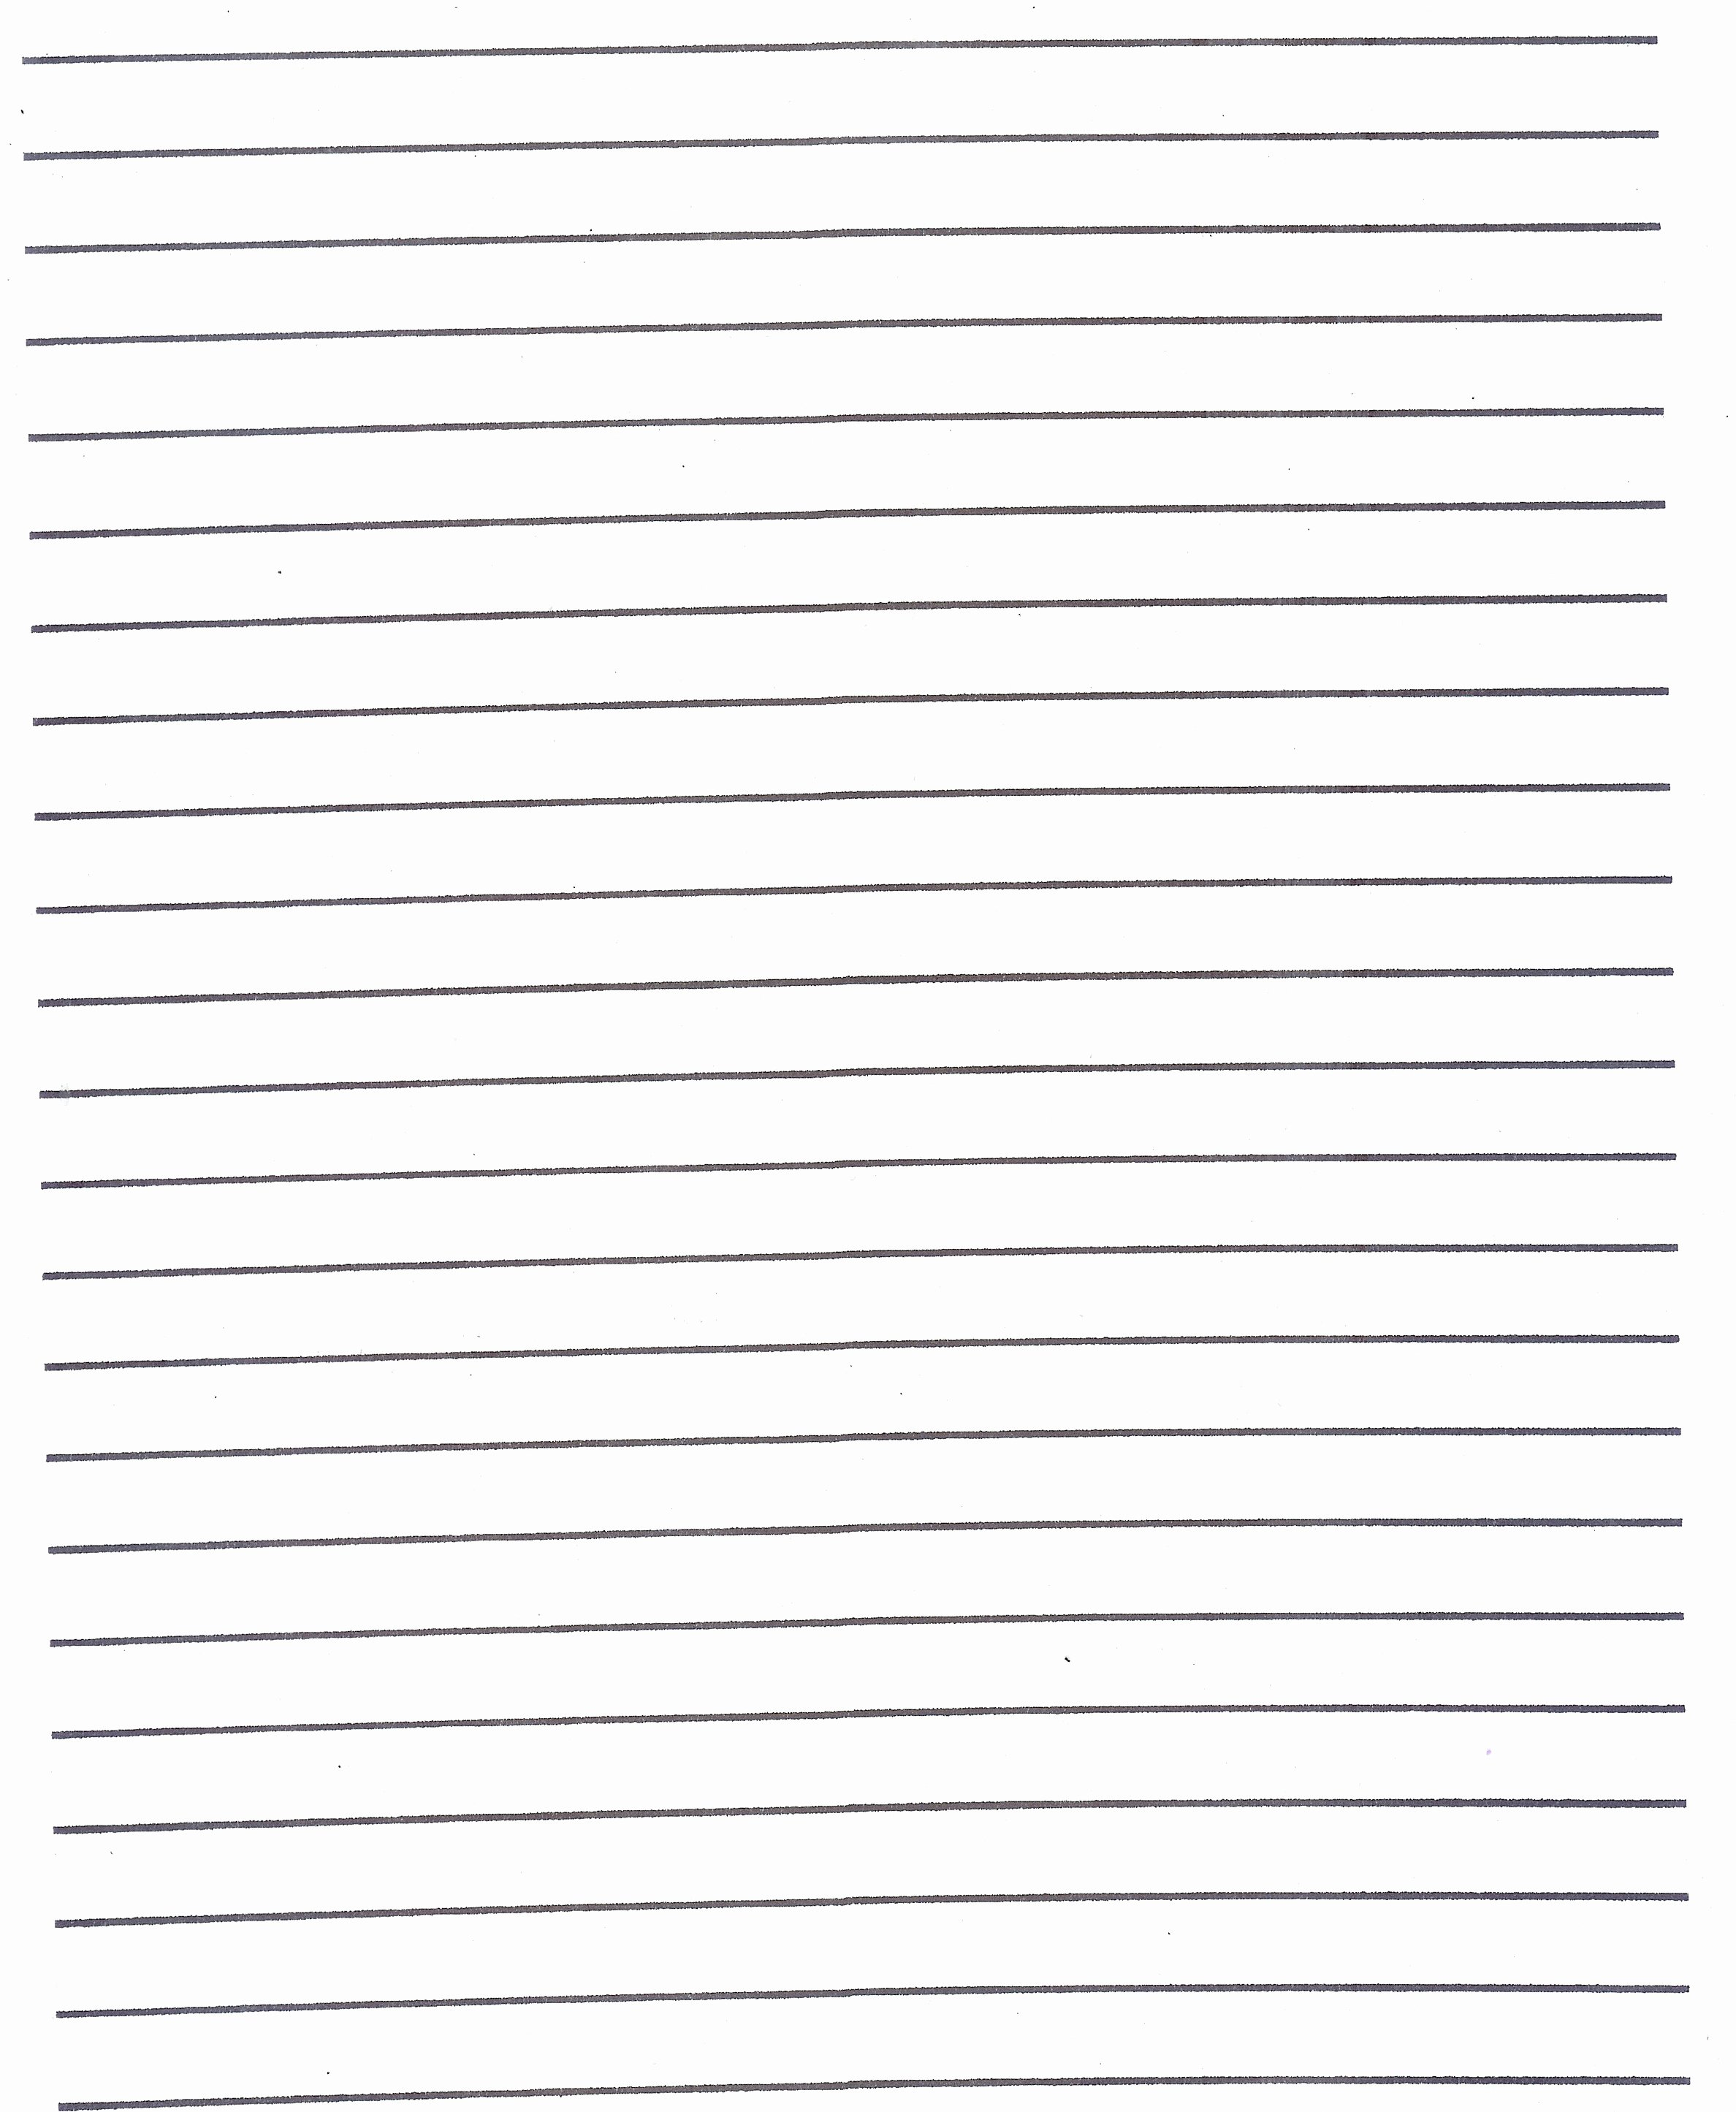 Lined Writing Paper Template Unique Paper Templates